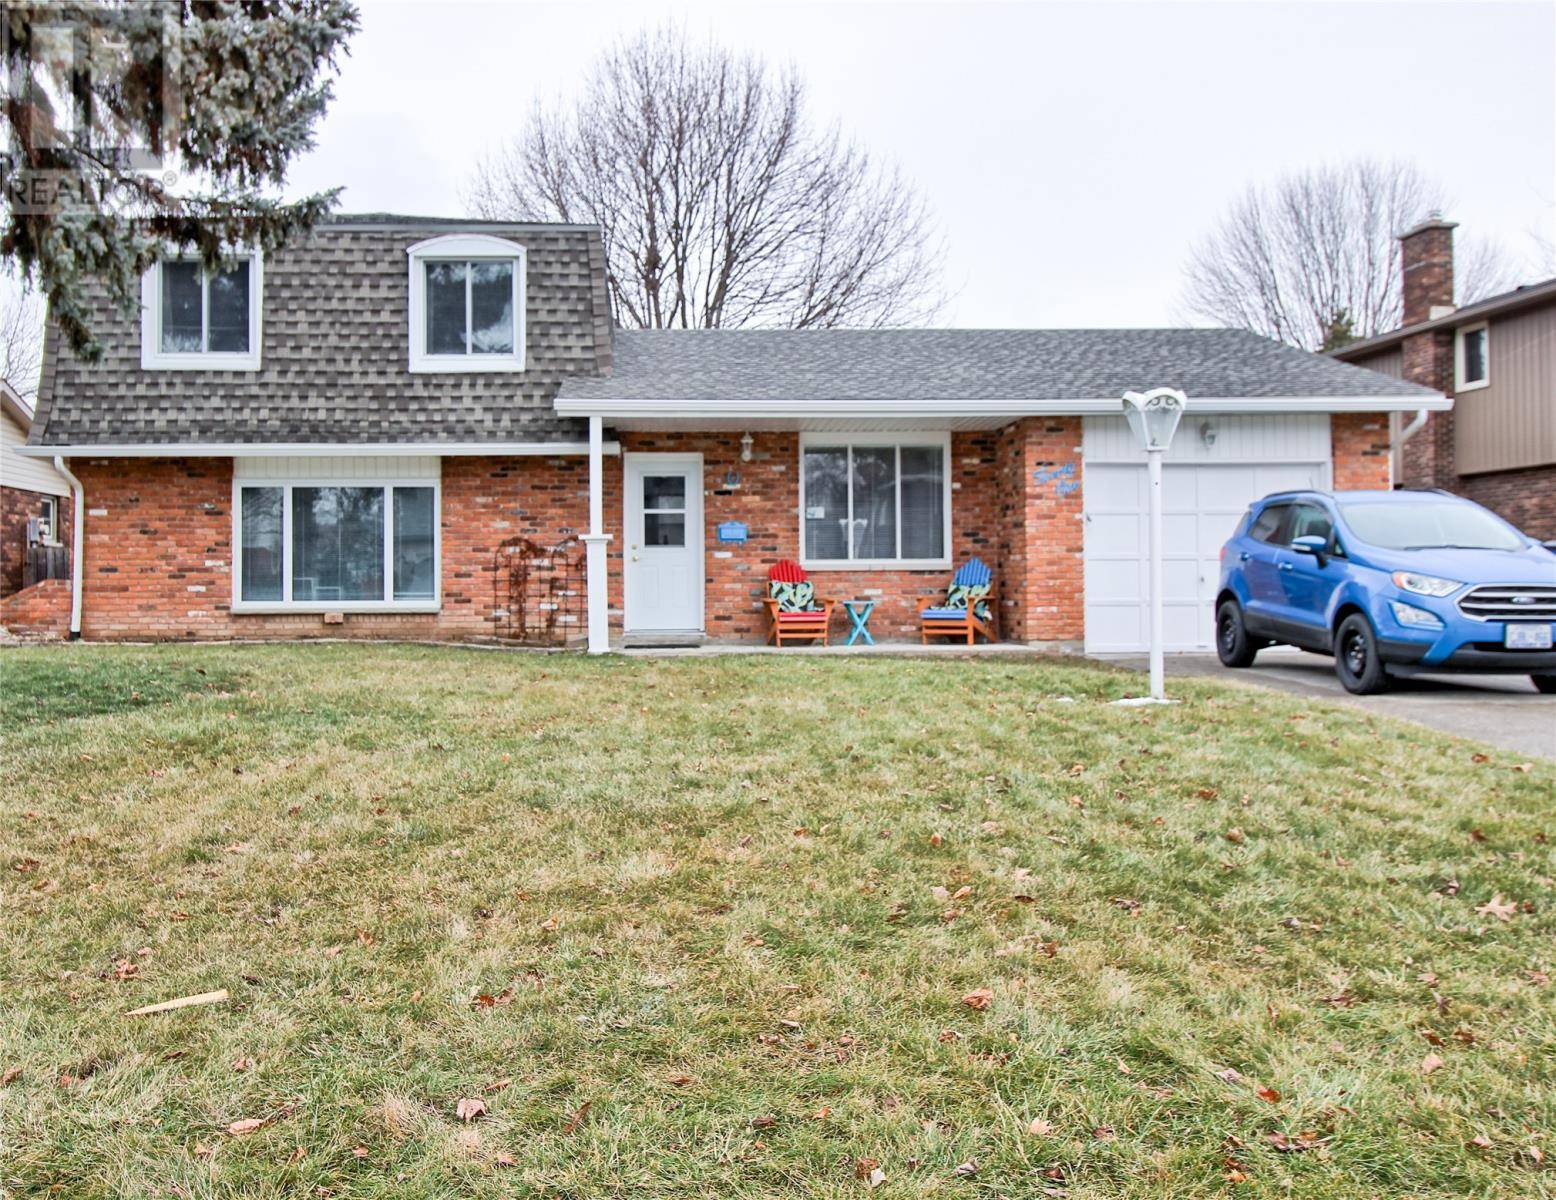 House for sale at 21 Saugeen Ave Chatham Ontario - MLS: 20001221